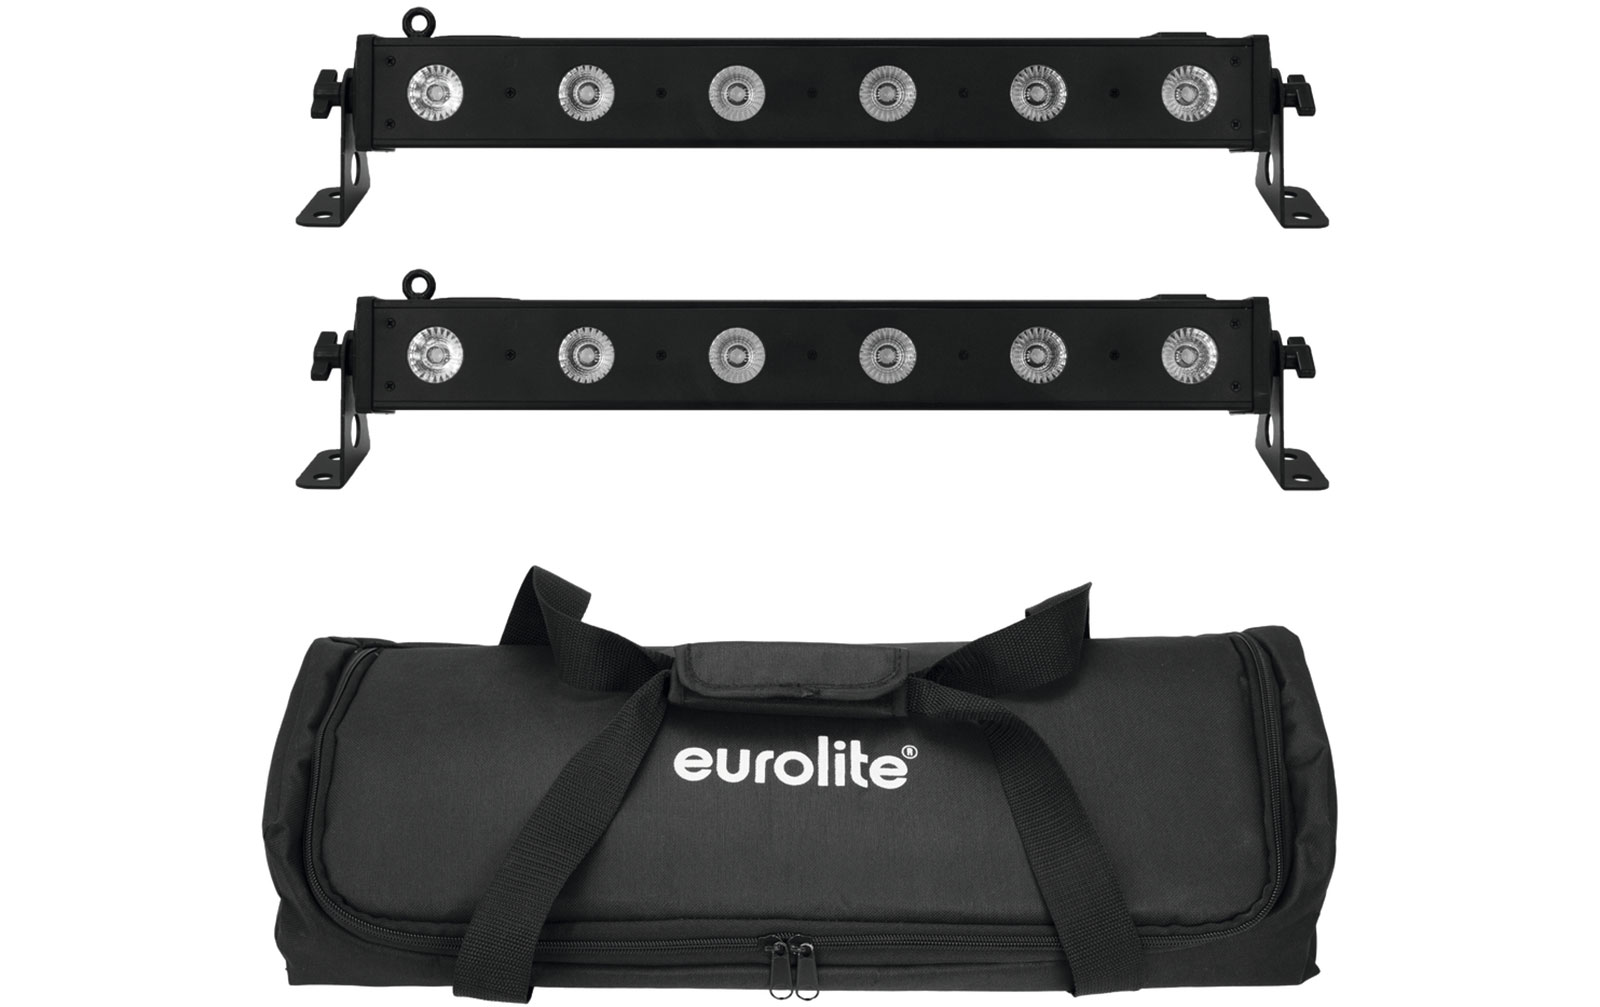 eurolite-set-2x-led-bar-6-qcl-rgbw-soft-bag